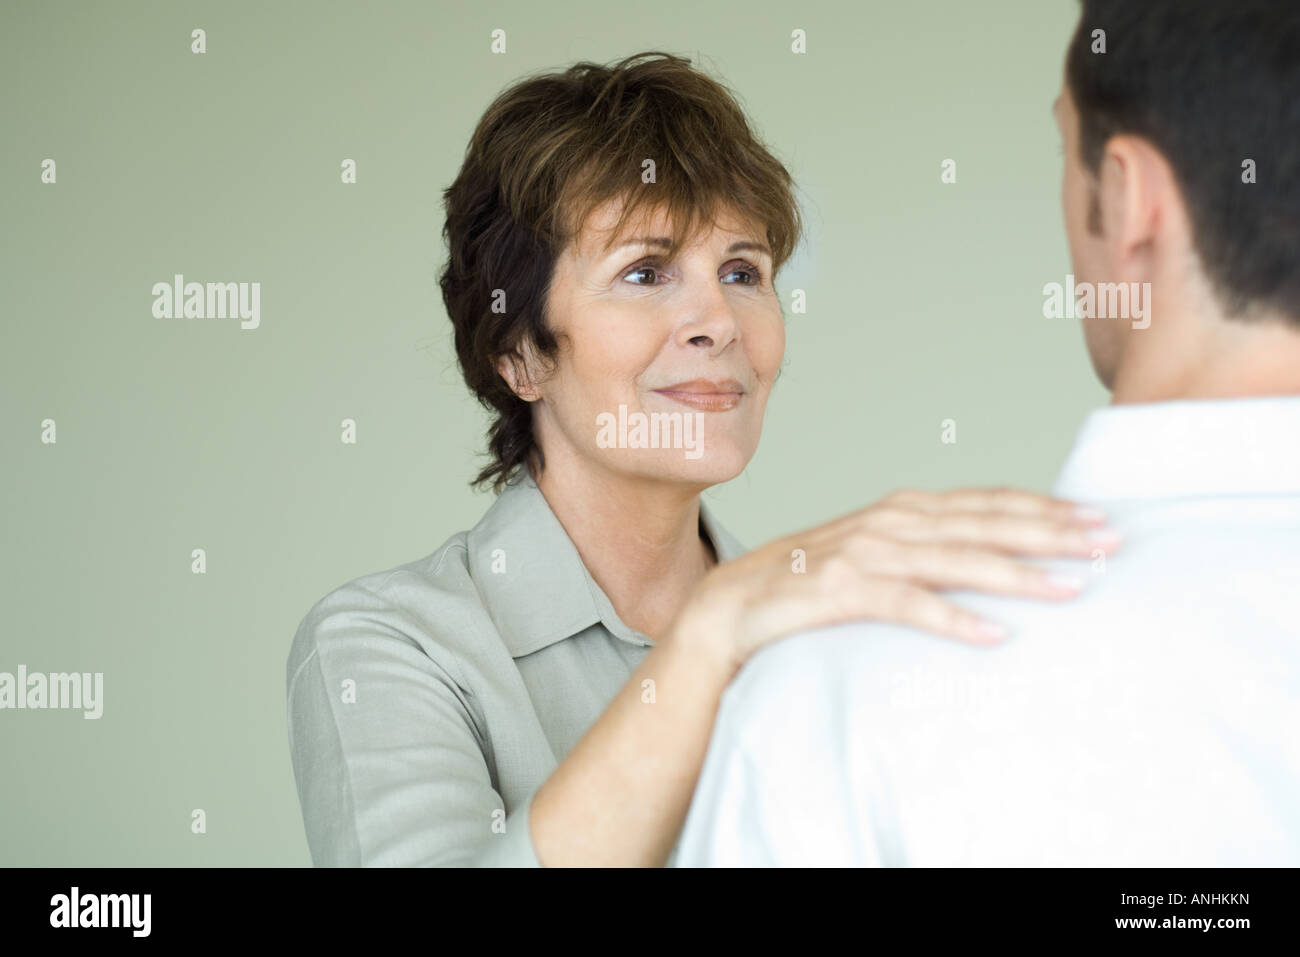 Senior woman standing in front of adult son with her hand on his shoulder, smiling - Stock Image